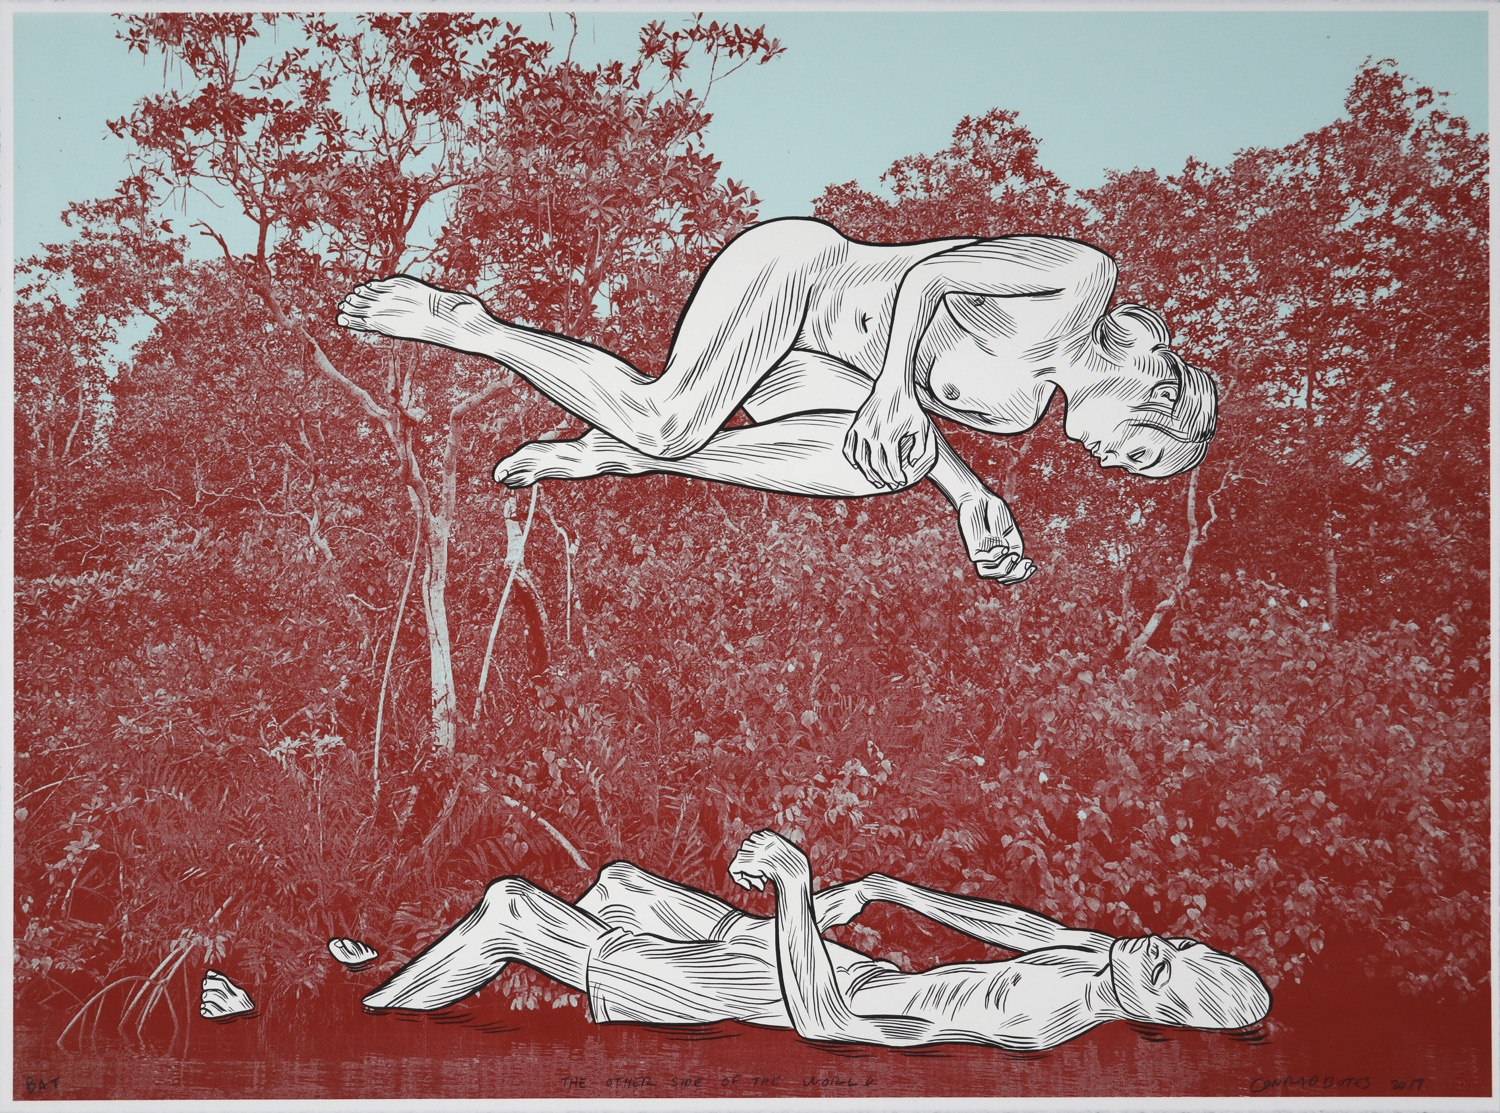 Man floating in water with woman suspended in the air above him with river forest background